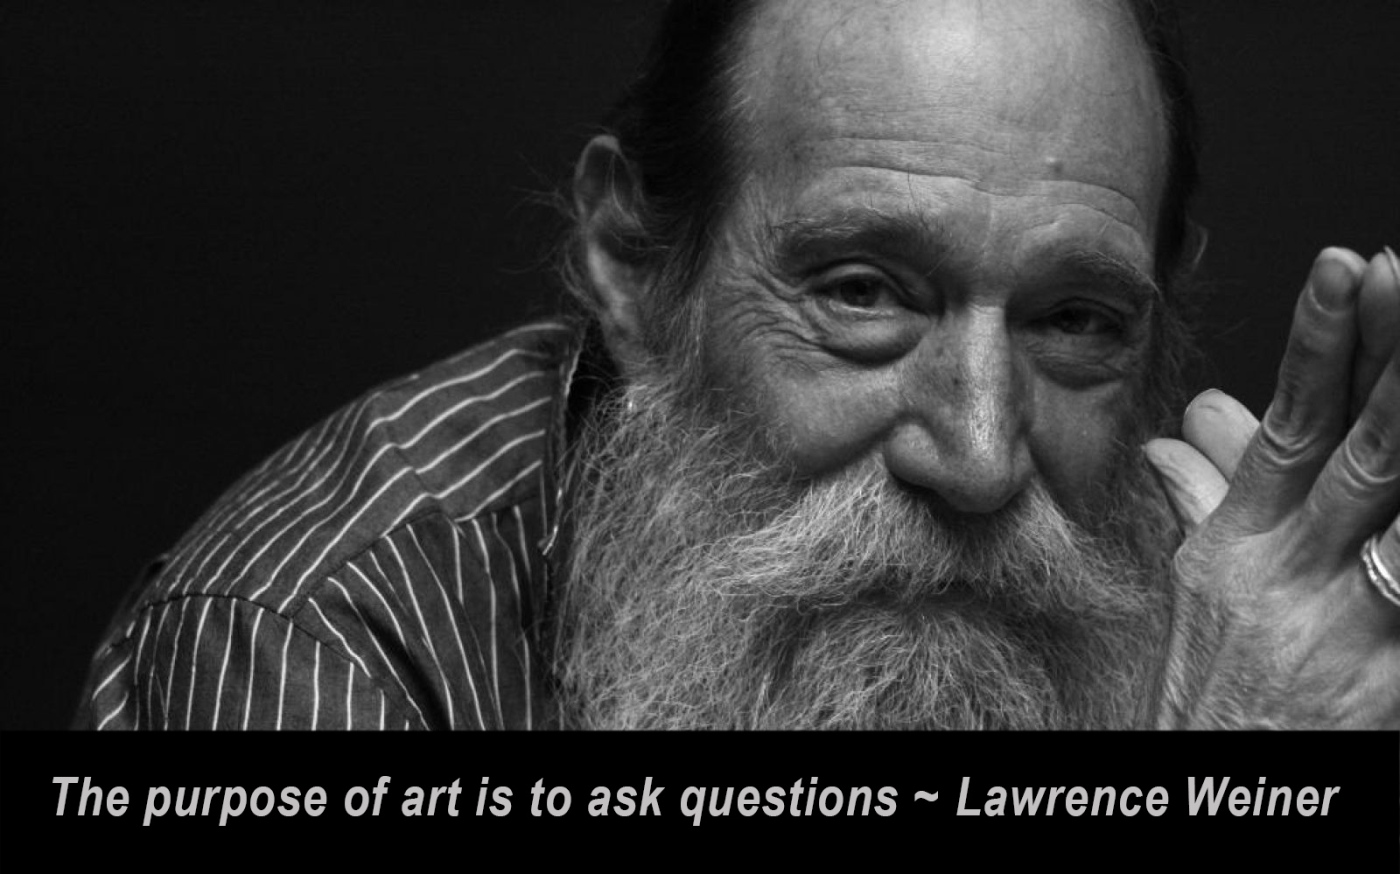 The purpose of art is to ask qurestions. Lawrence Weiner